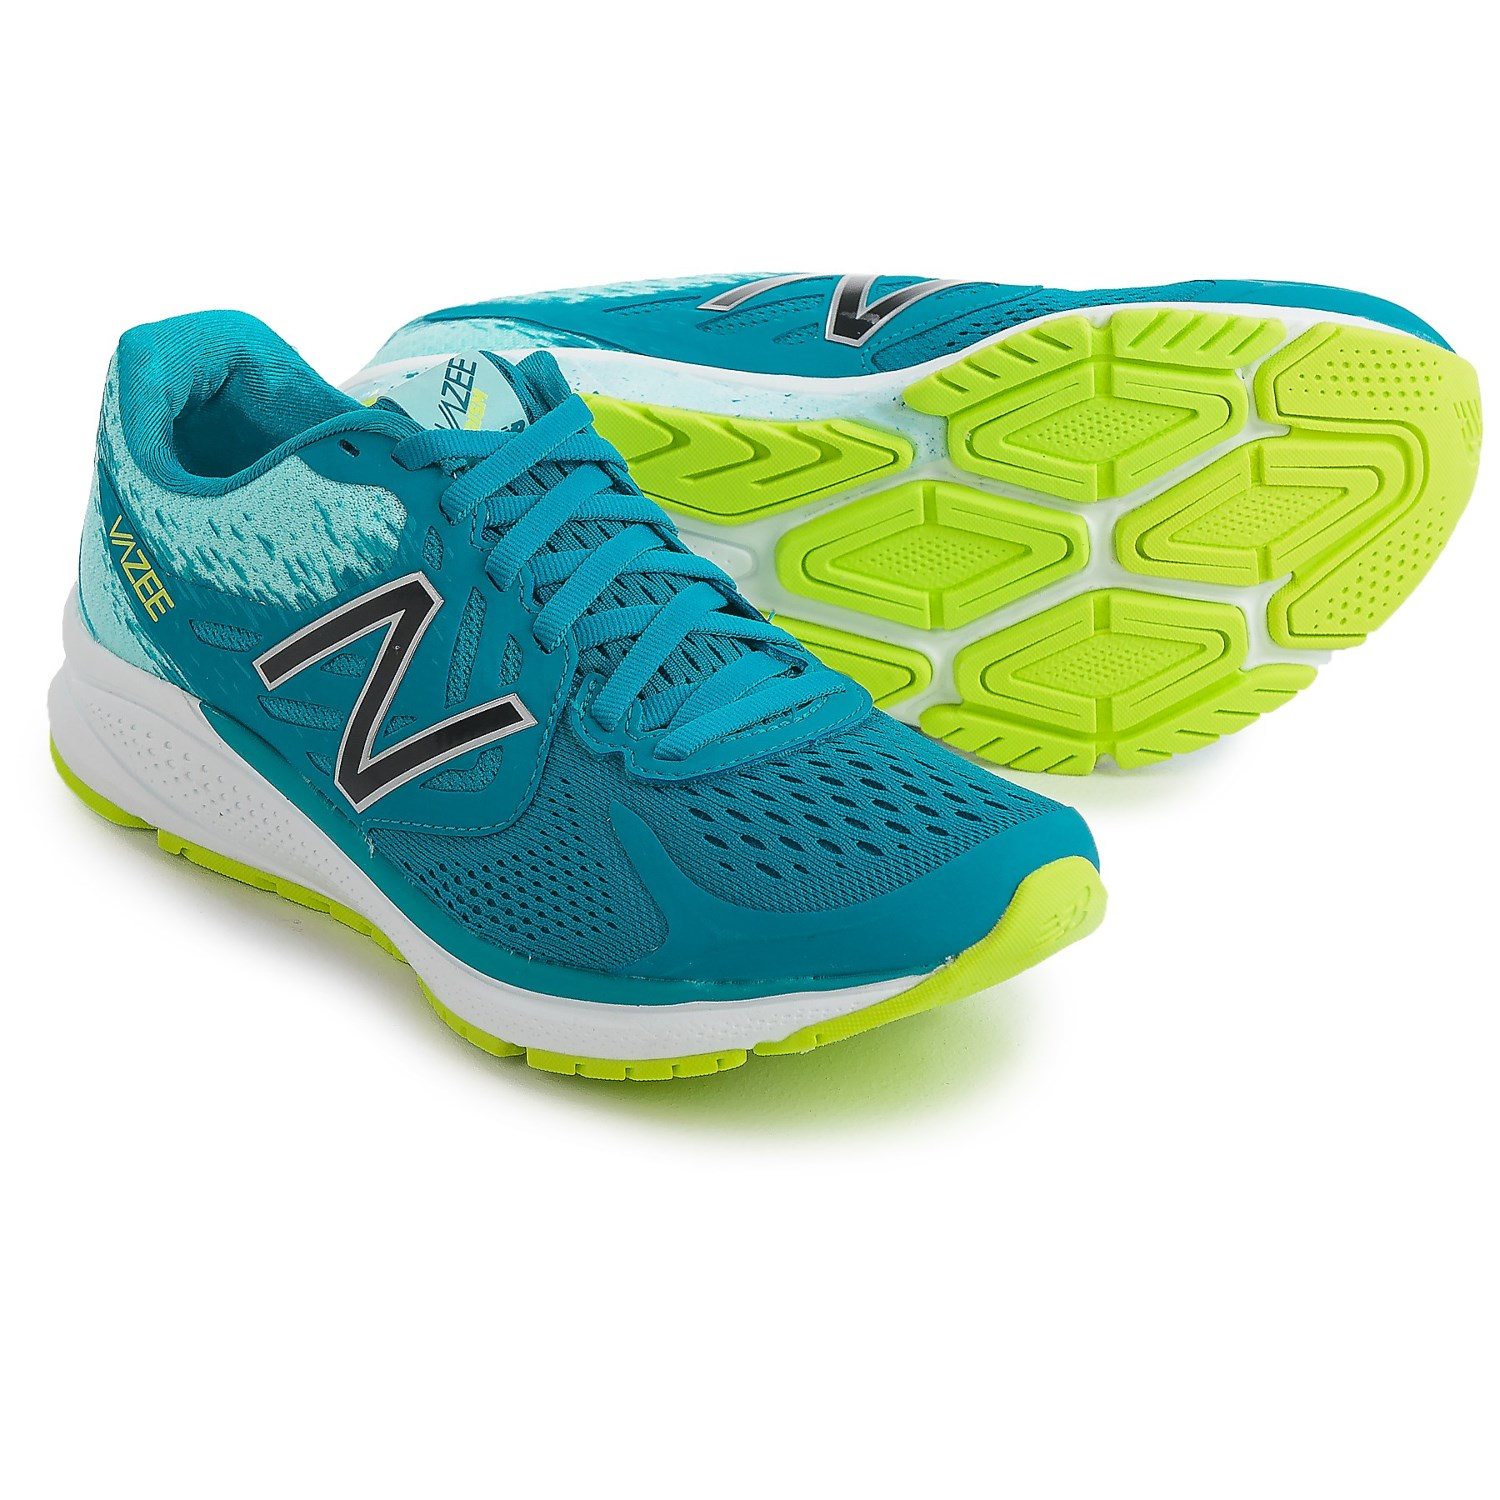 new balance vazee prism v2. new balance vazee prism v2 running shoes (for women) in deep ozone blue v